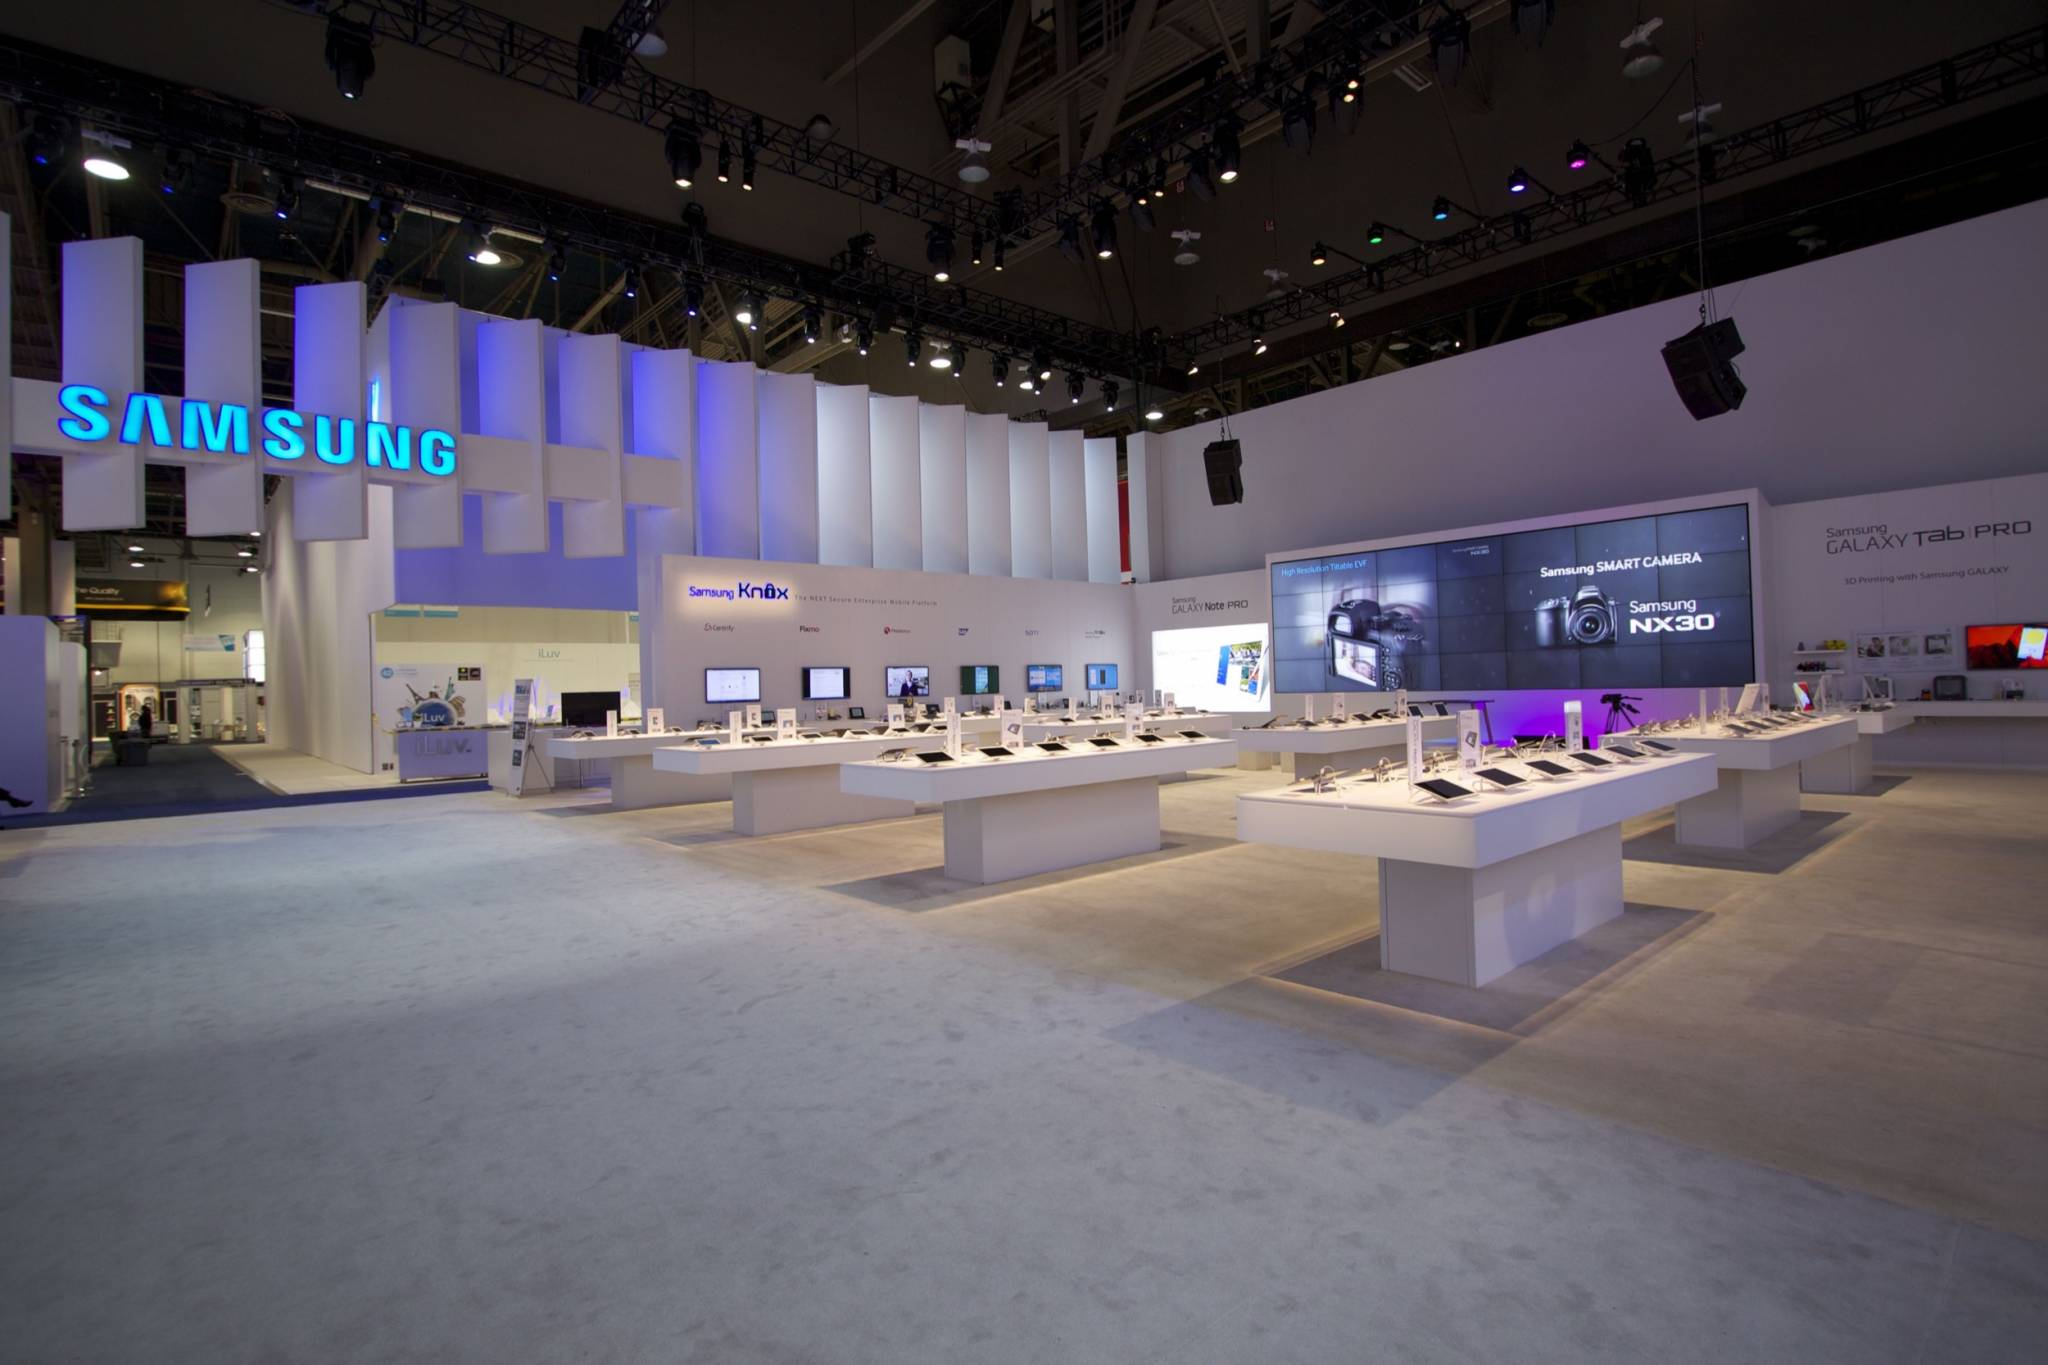 Samsung Exhibition Stand Design : Ces samsung exhibit fine design associates